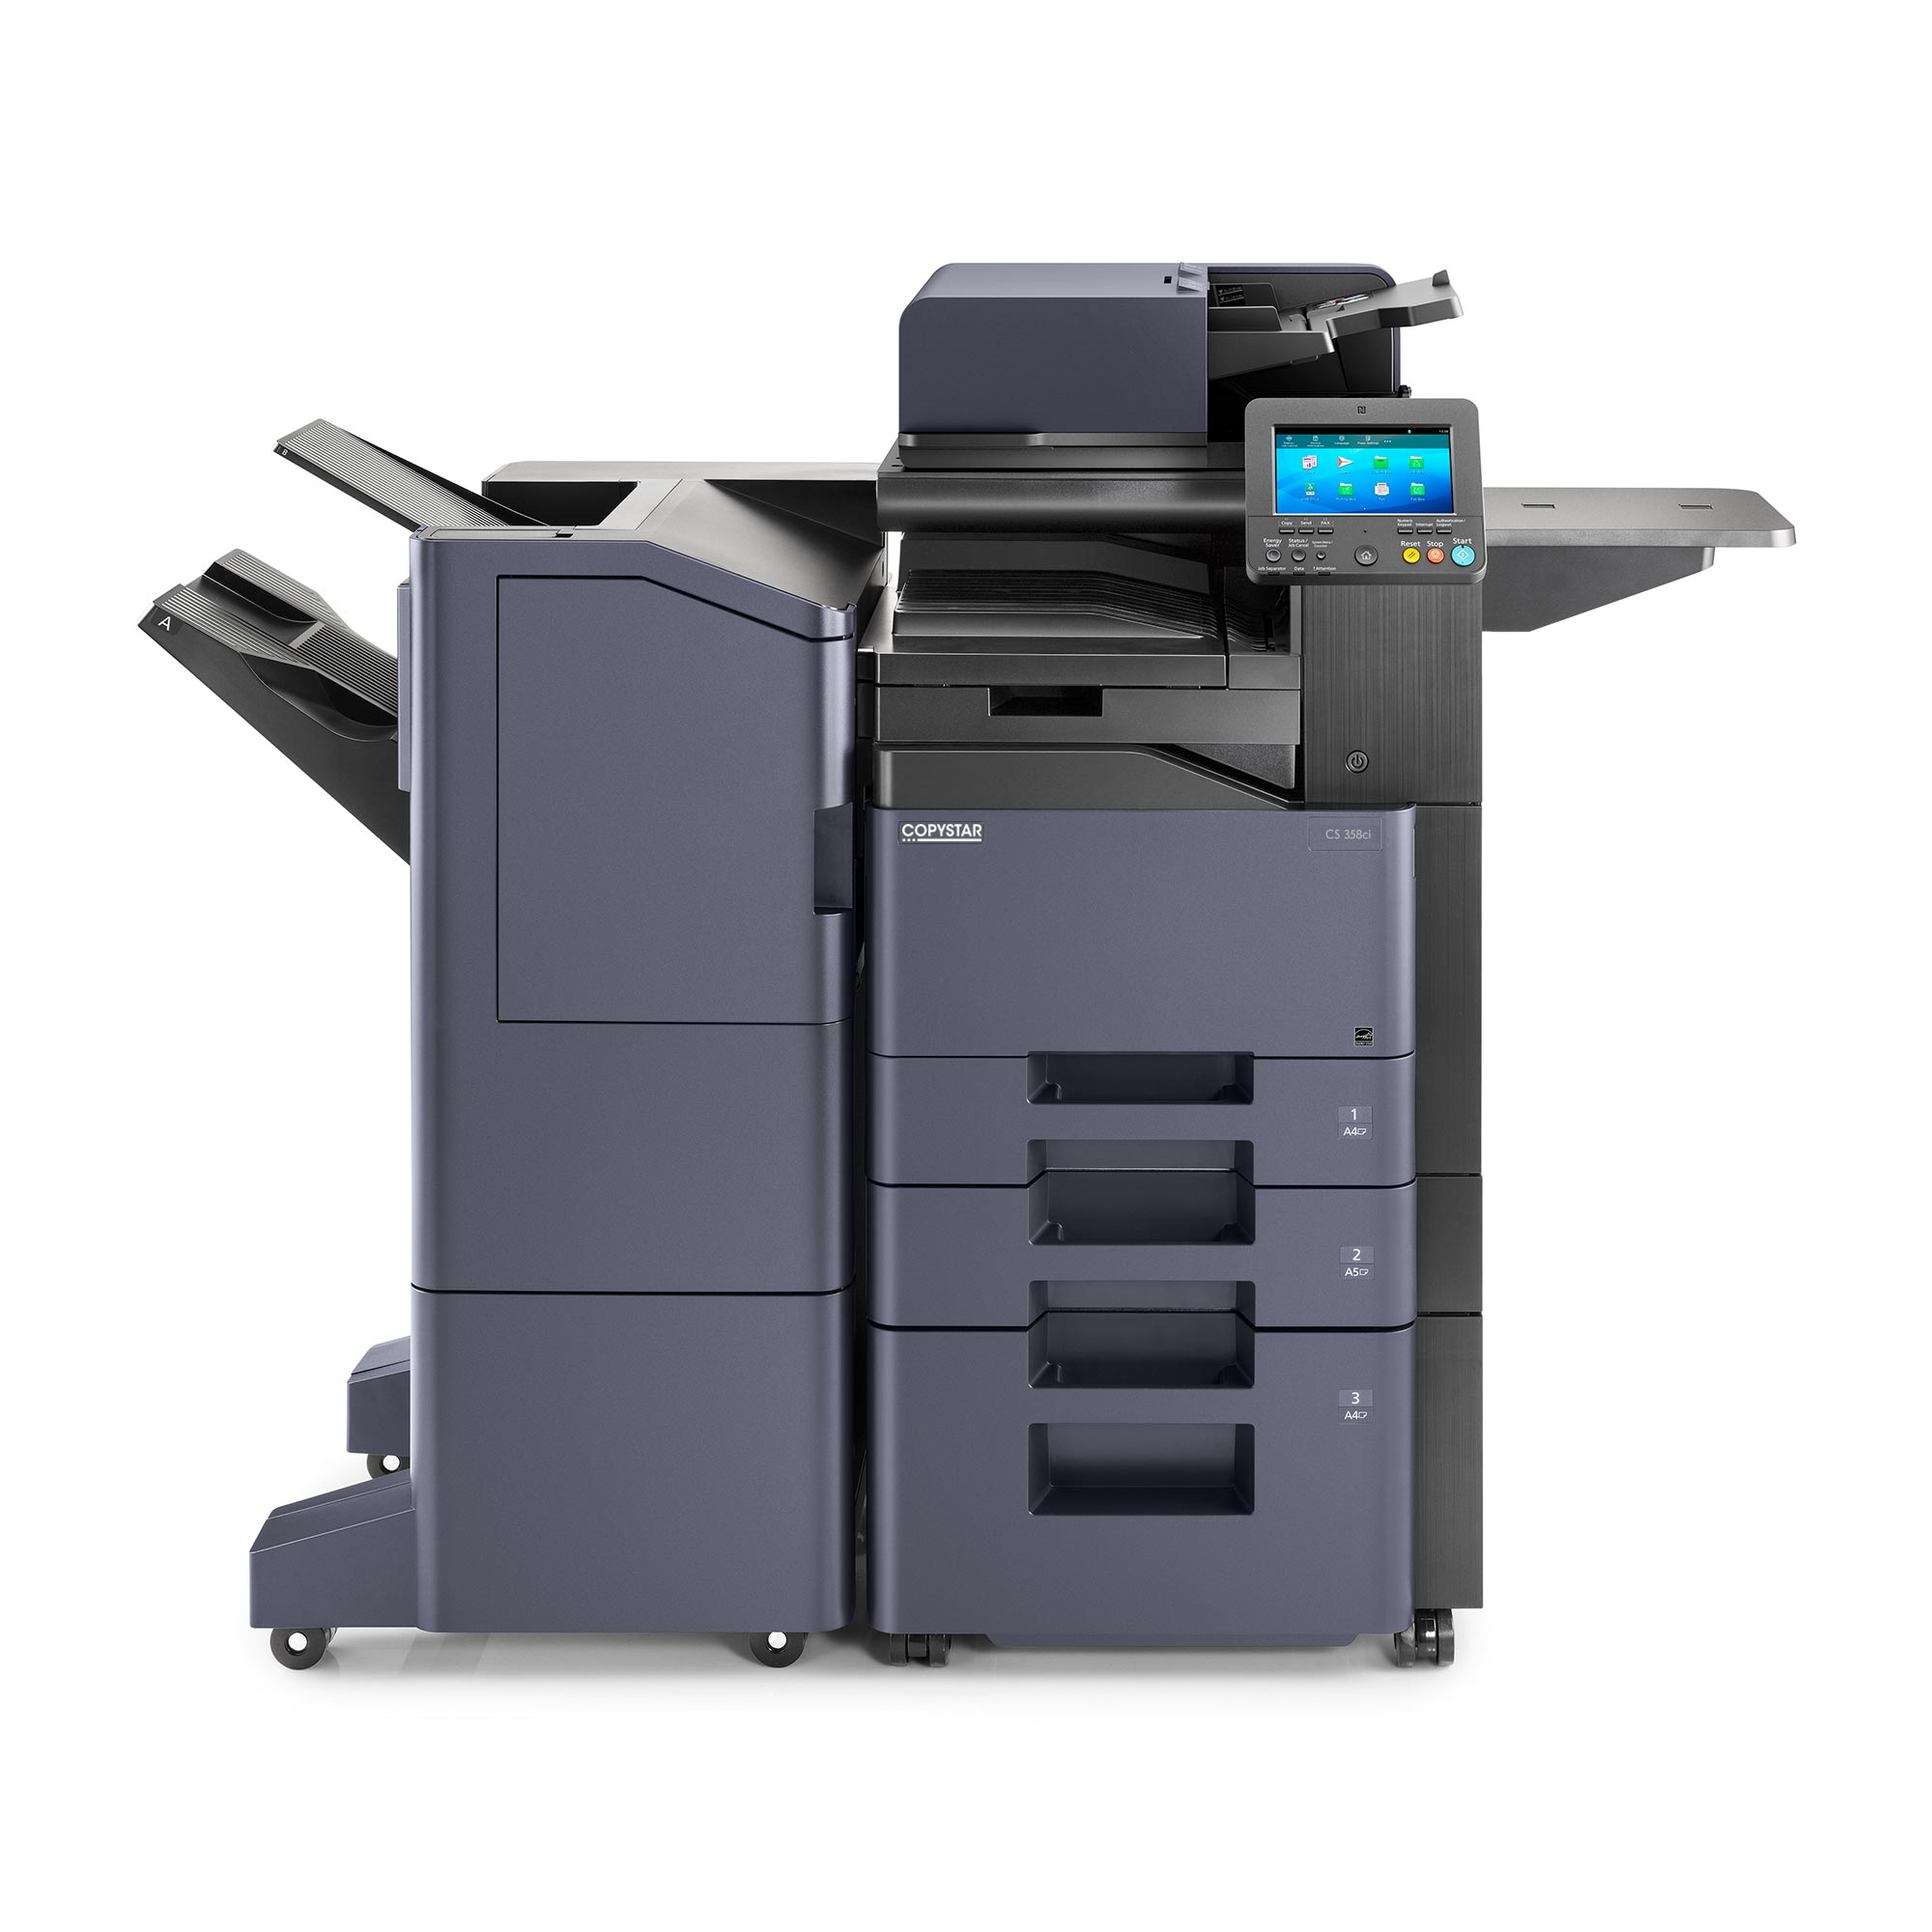 Kyocera CS_358ci - Lease Copier